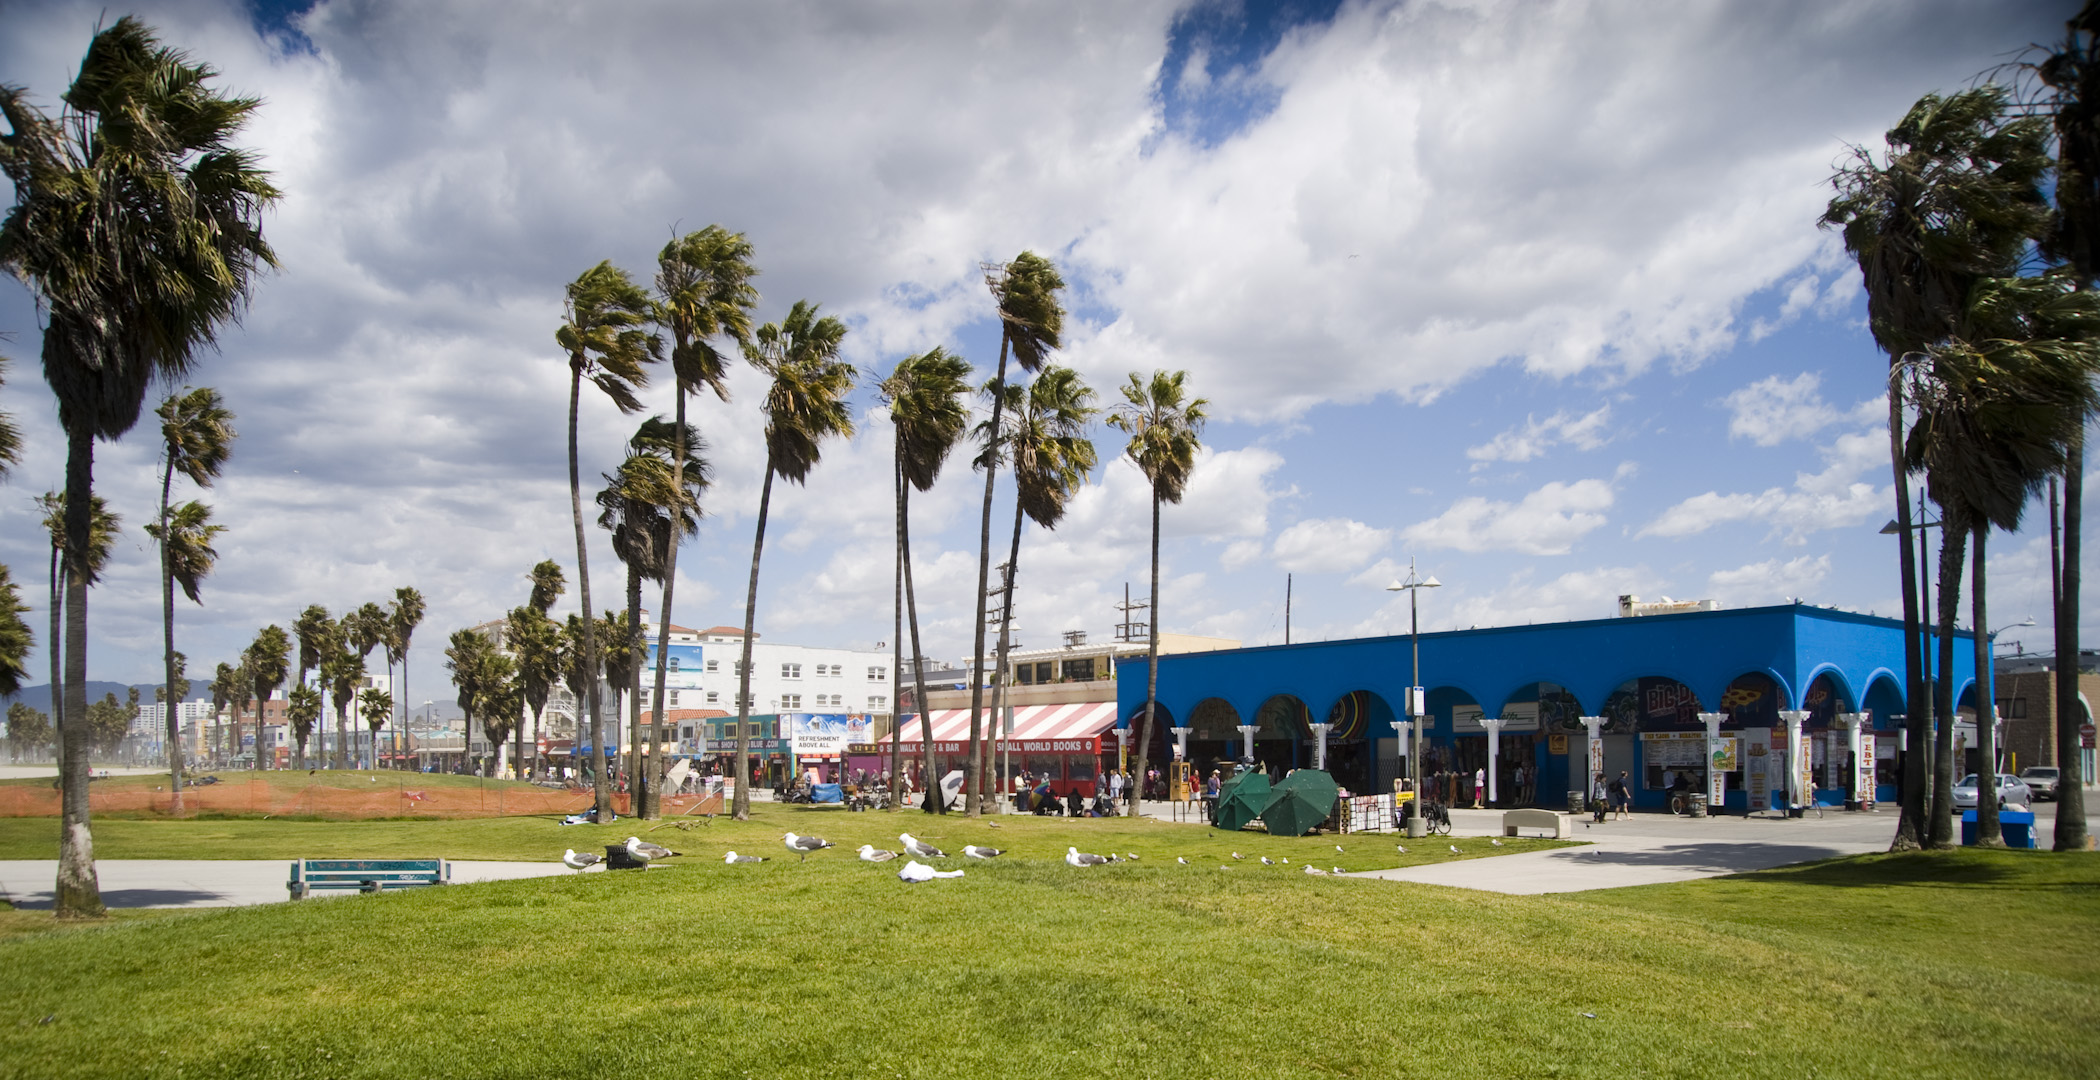 Venice Beach Is The Busiest Facility Operated By Department Of Recreation And Parks This Iconic Site Attracts Visitors From All Over World It